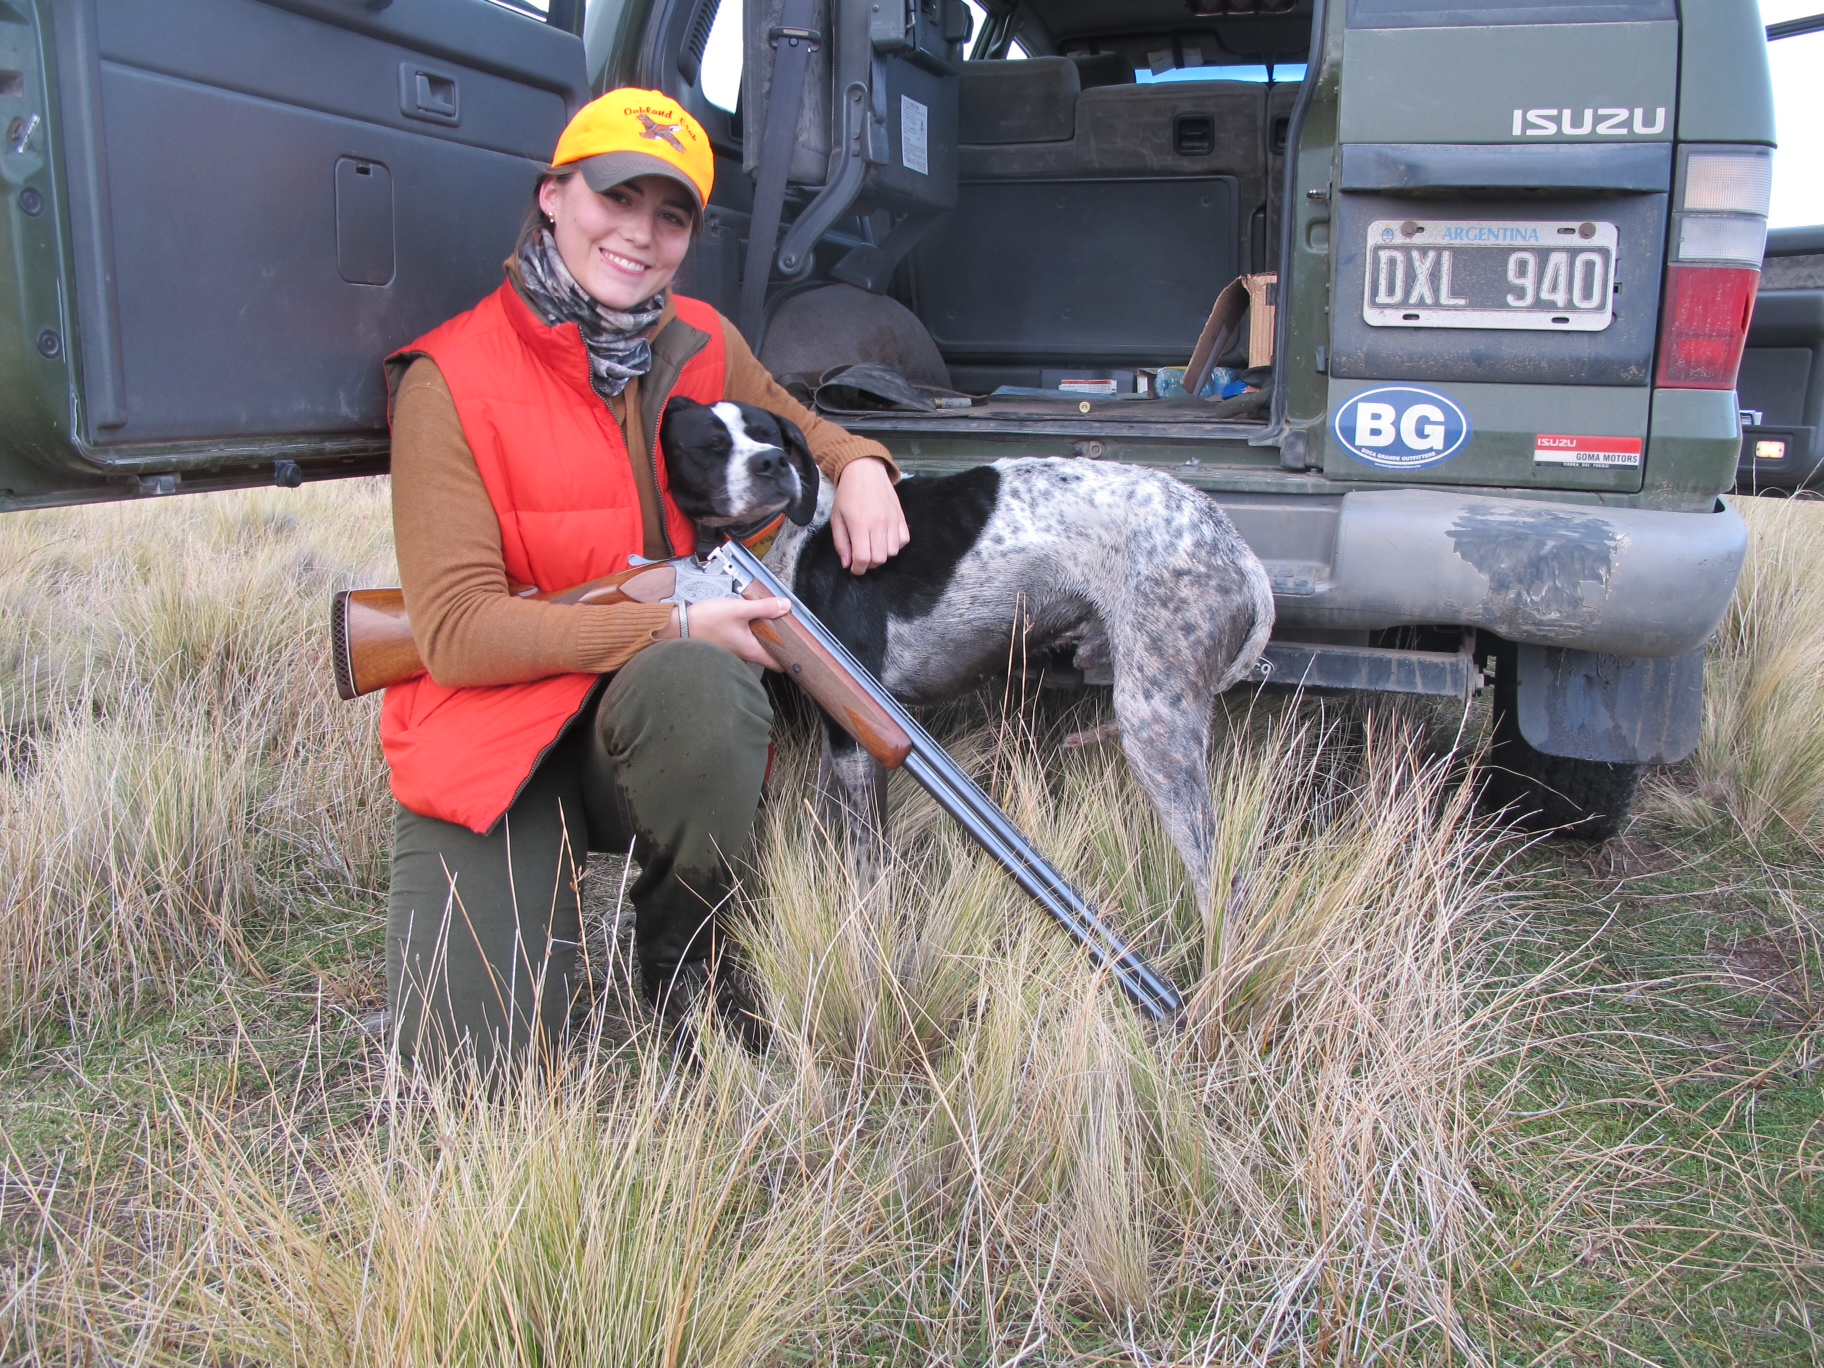 hunters women Read: women hunters, trophies, hypocrisy, and assholes from david reeder on april 22, 2015 for recoil.